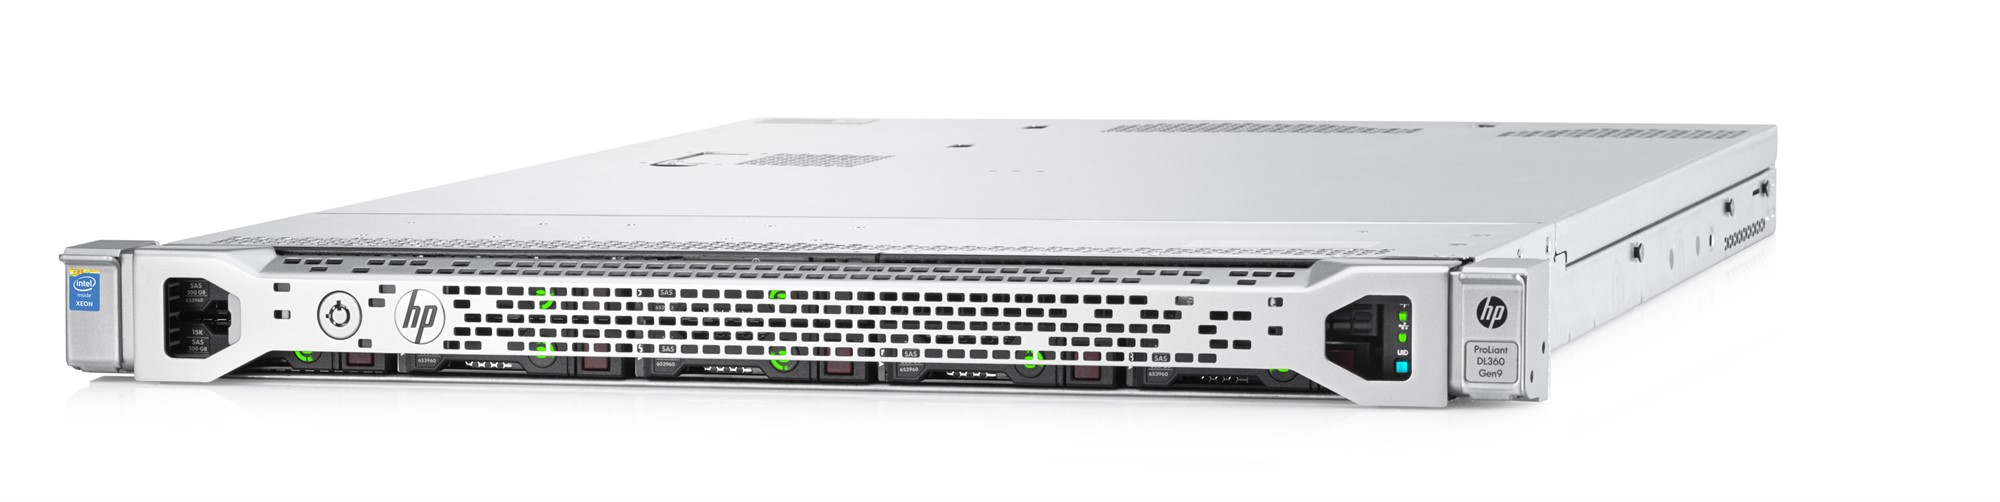 HPE 755258-B21 PROLIANT DL360 GEN9 1U